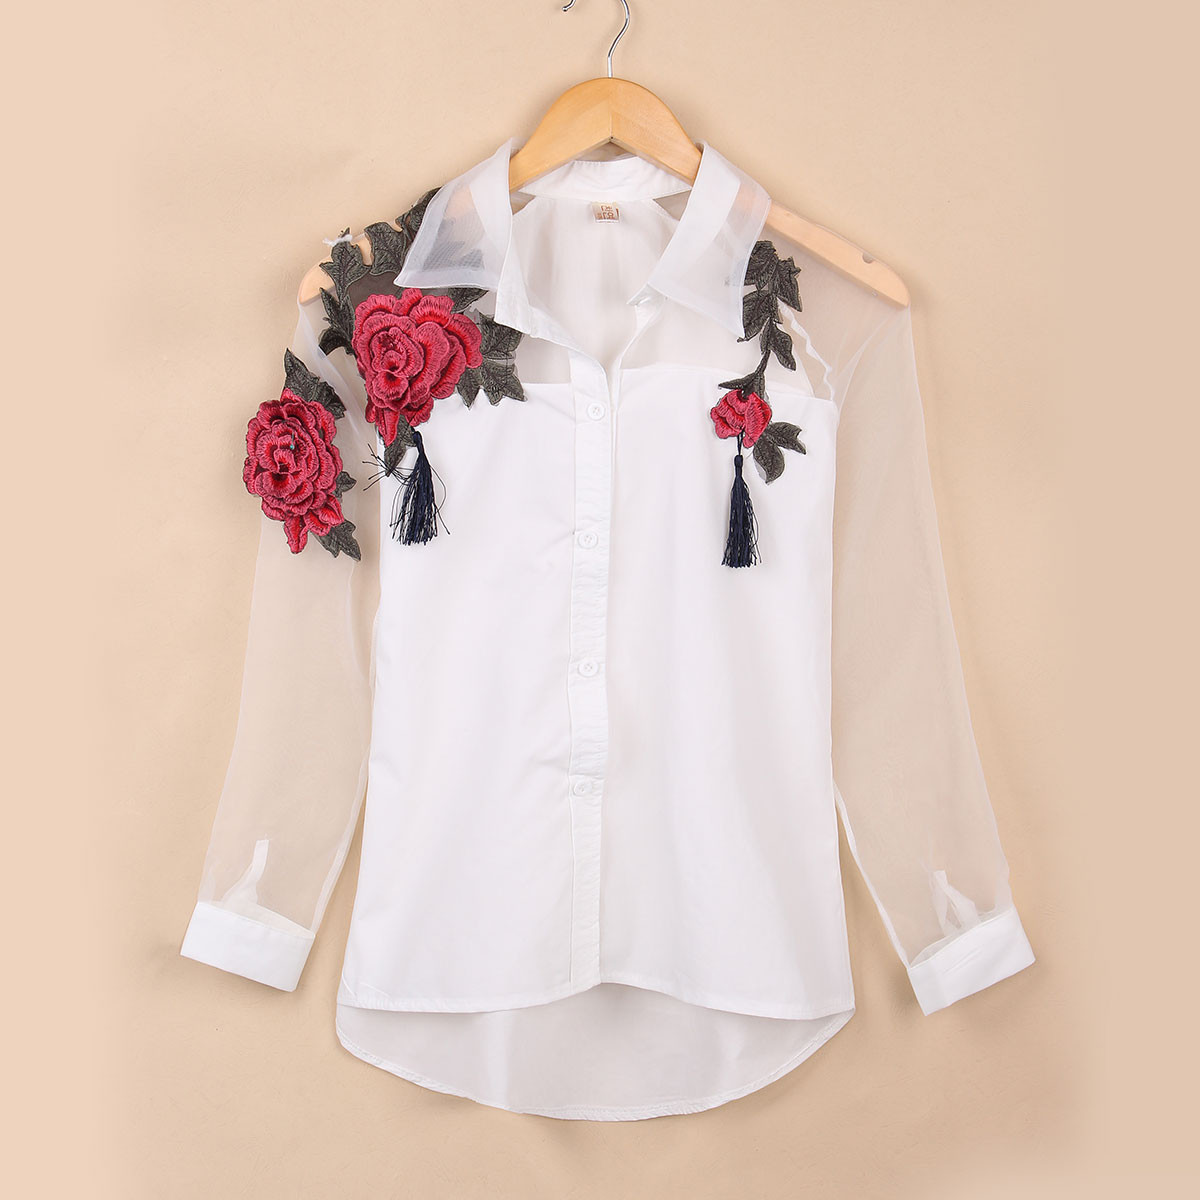 7d3dfbe62ce Tops Women Elegant Blusas Sexy 2018 Spring Summer Long Sleeve Embroidery  Floral Print Blouses Ladies Lapel Organza Shirt-in Blouses & Shirts from  Women's ...